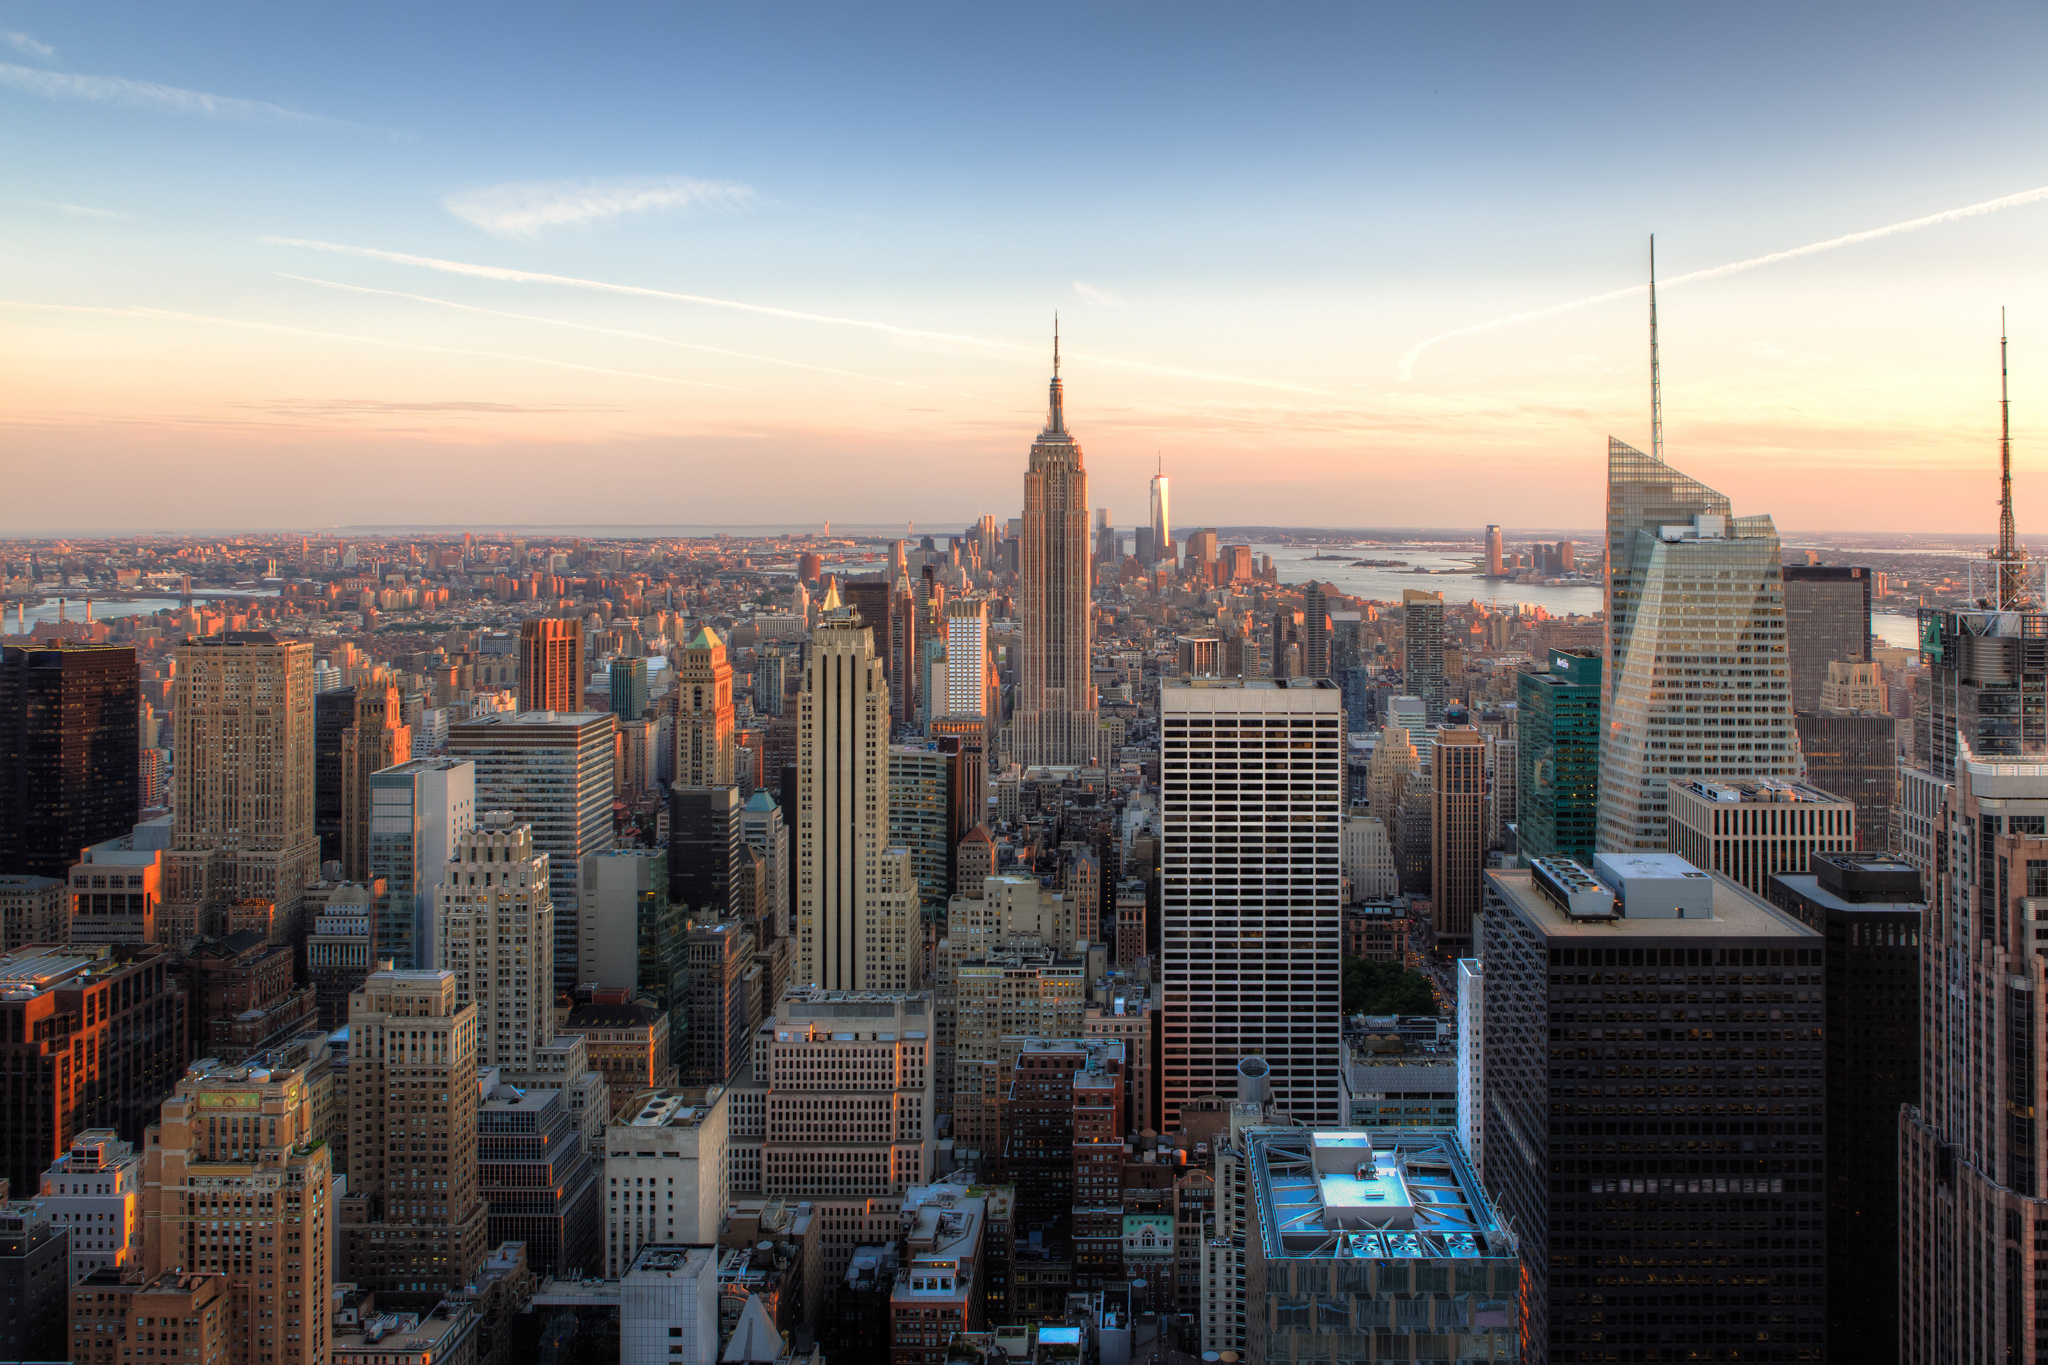 18 ways to be an a-hole in New York City